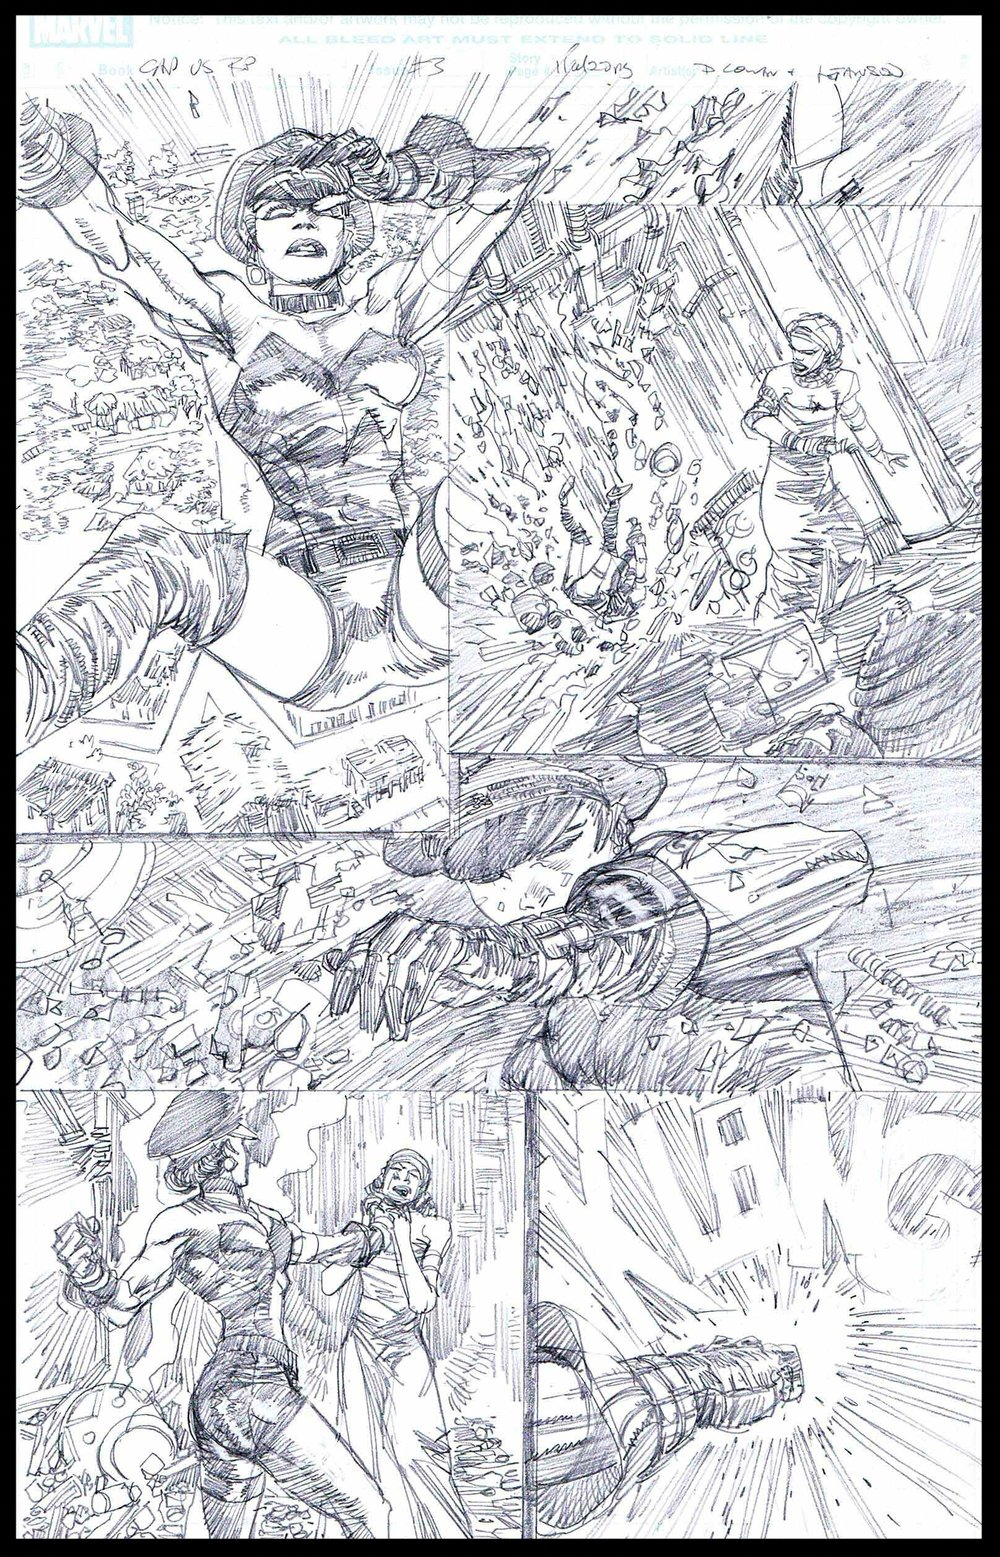 Flags of Our Fathers #3 - Page 11 - Pencils